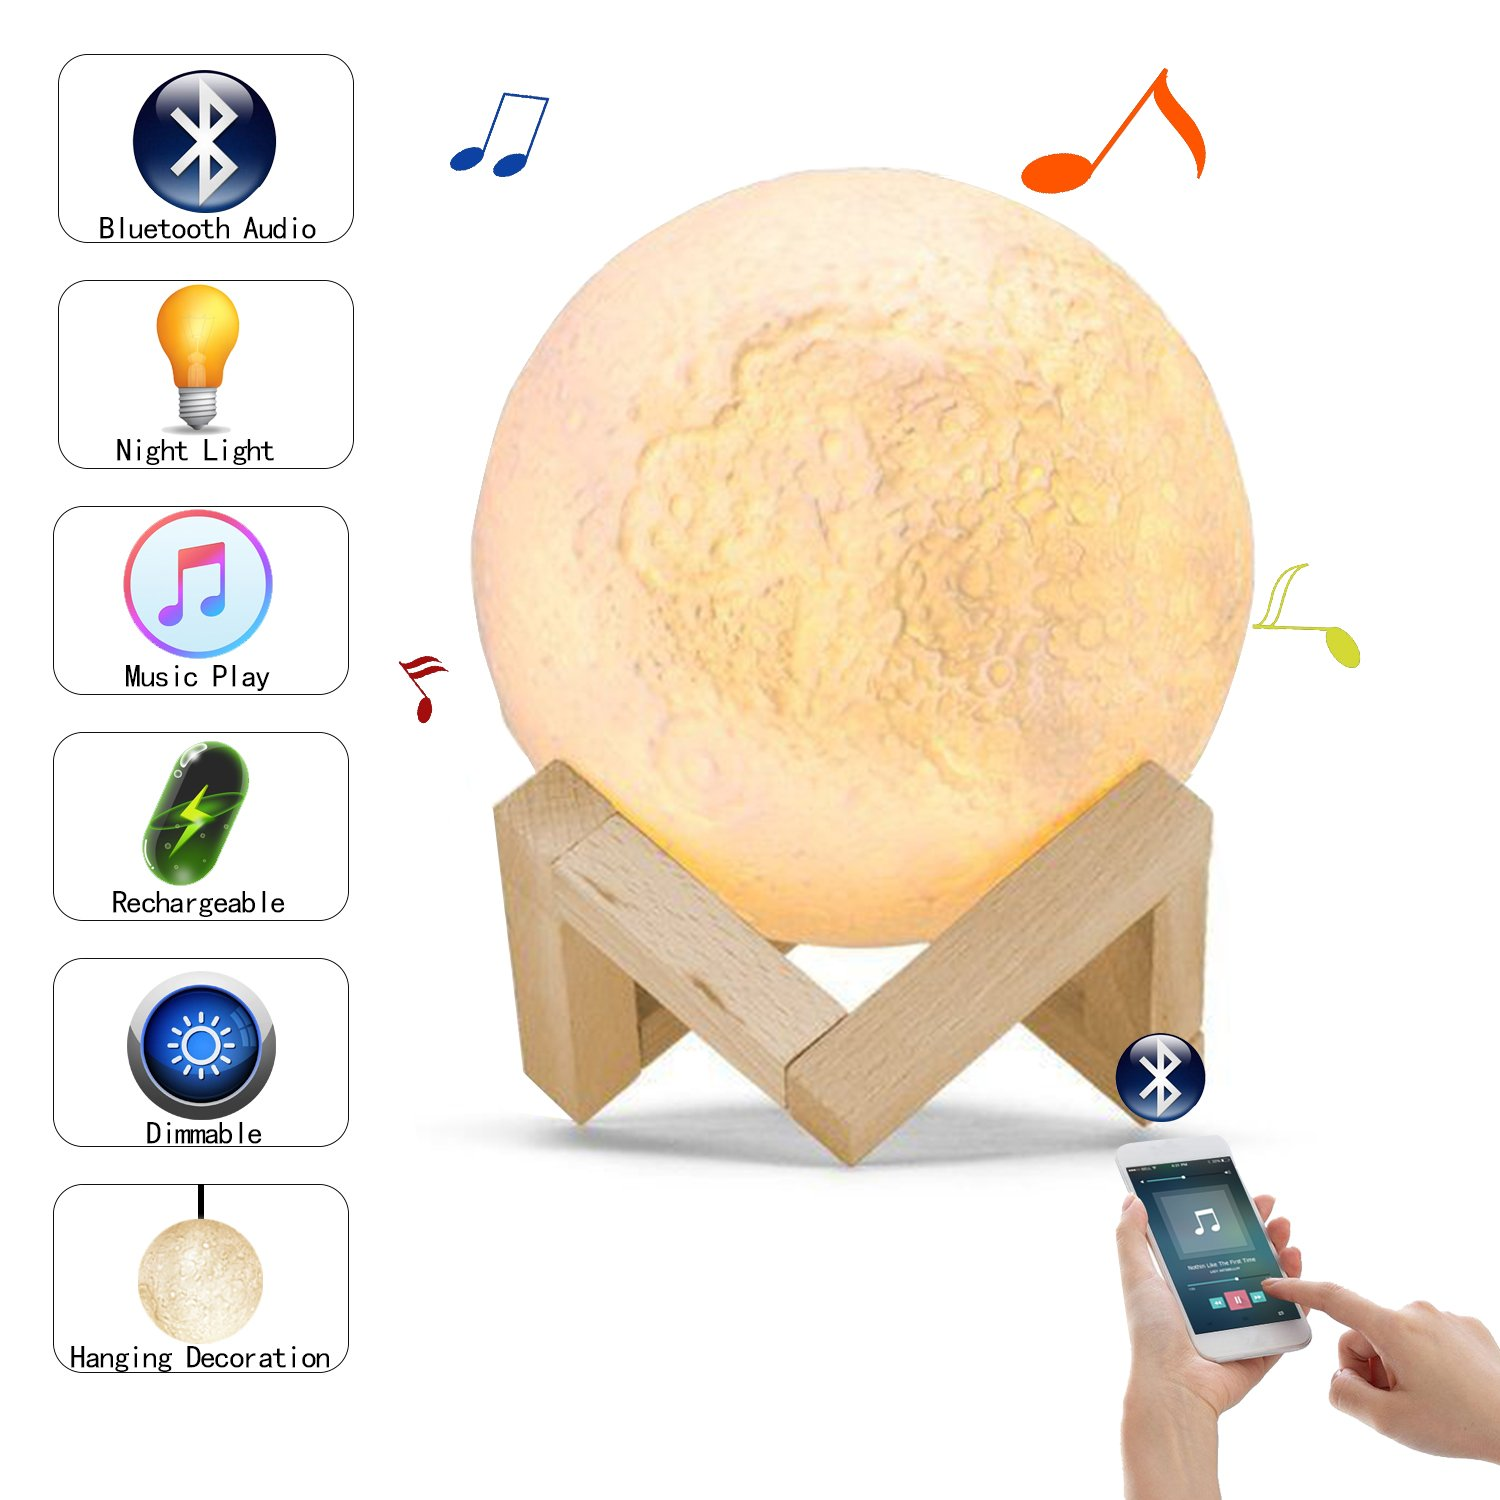 Moon Light, 3D Printed LED Moon Lamp Speaker, USB Rechargeable Touch Control Warm White & Cool White Stepless Dimmable,5.1 Inch (Moon Light Speaker) by baby way